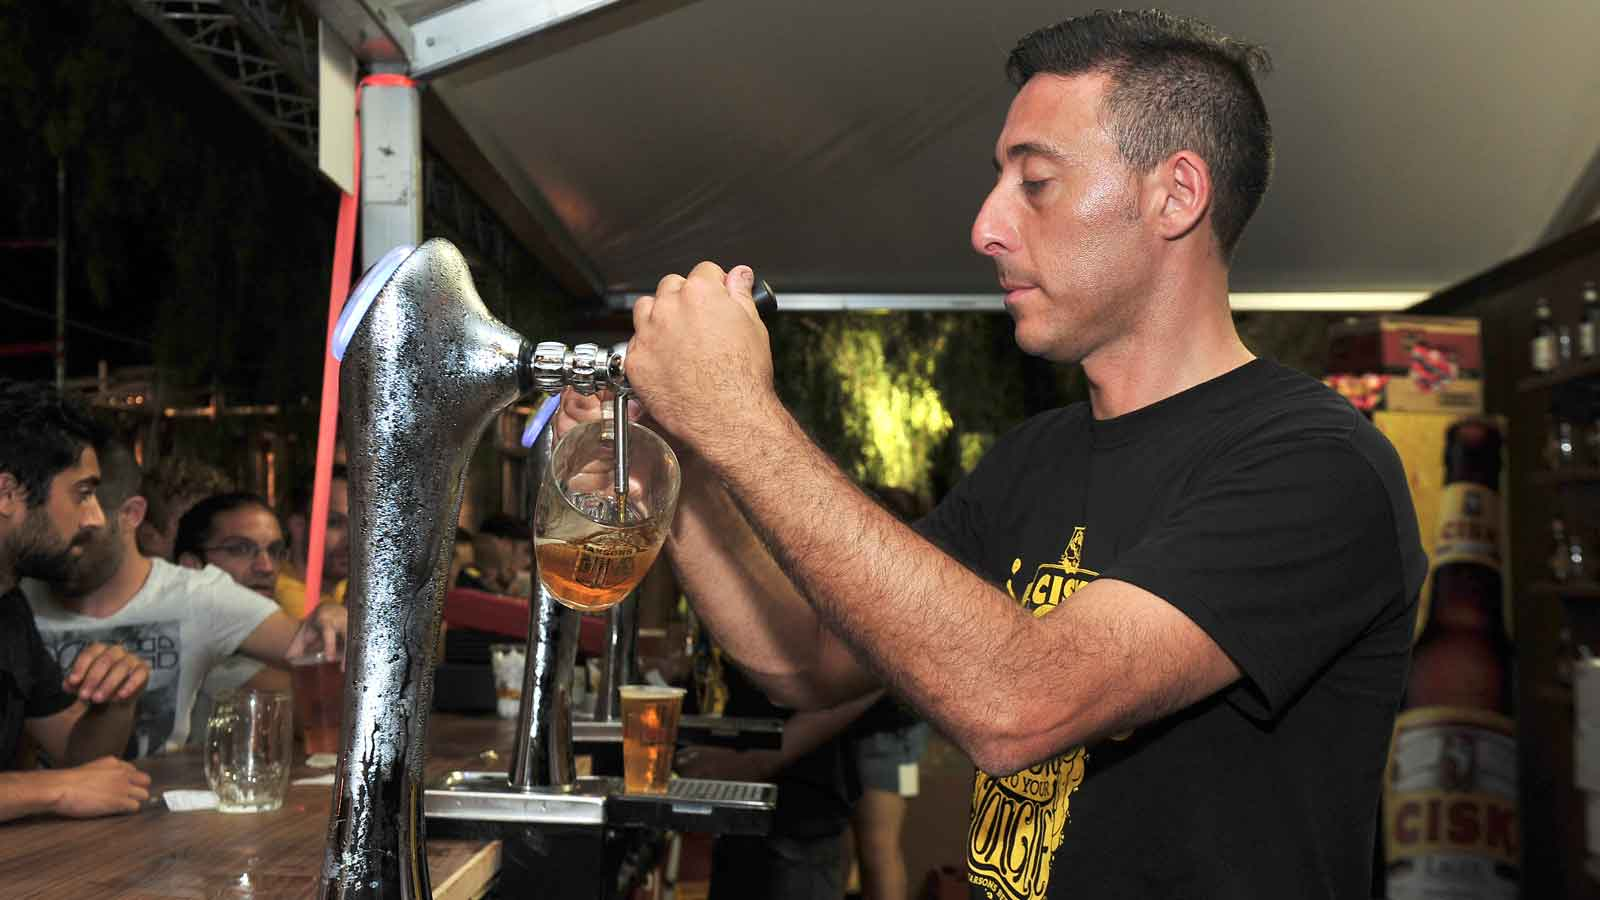 The Farsons Beer Festival kicks off tonight